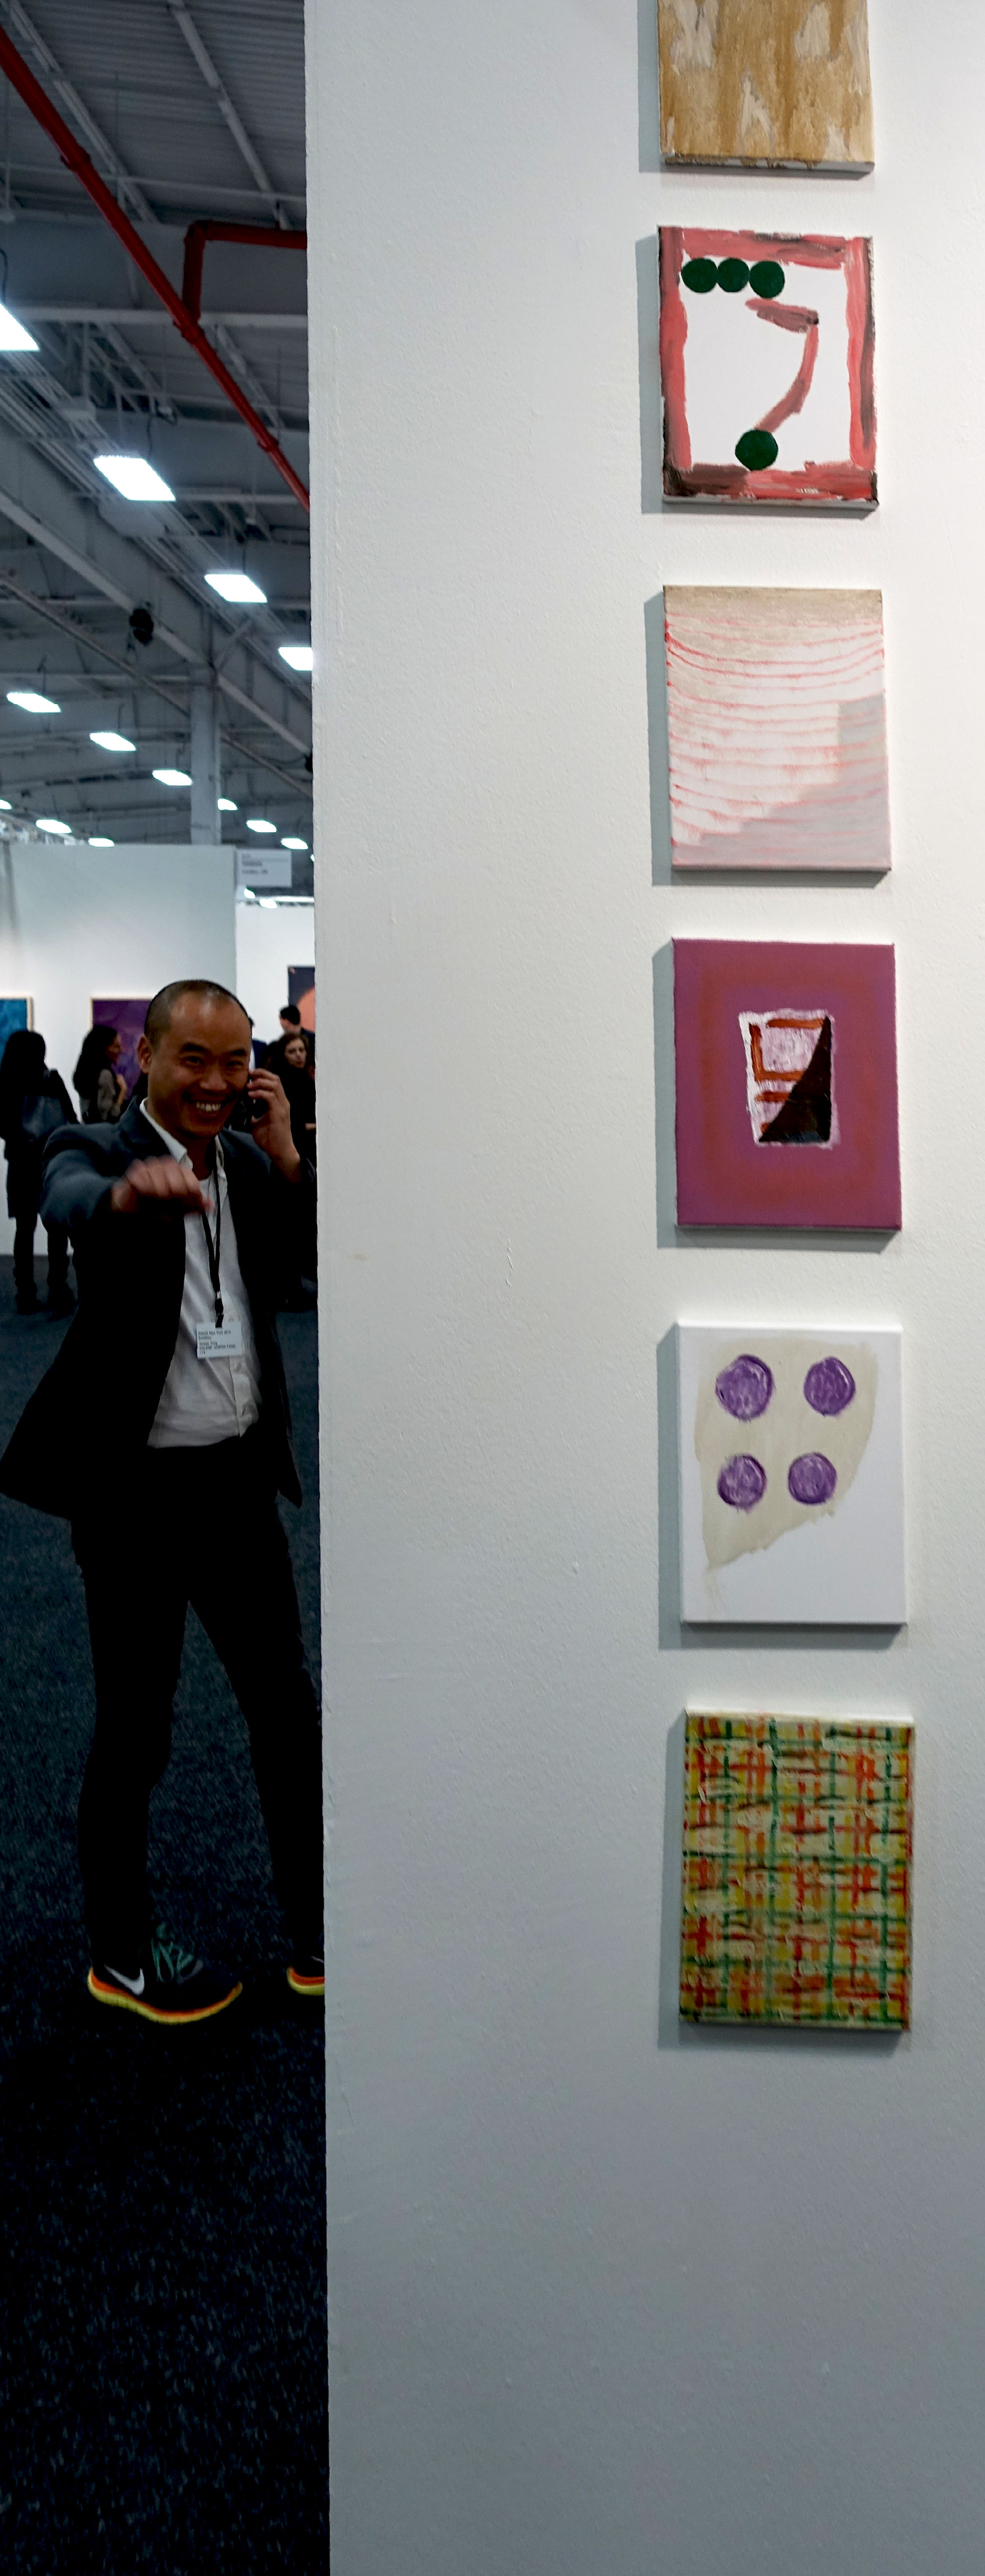 I was happy to see and visit with Joe Tang busy as usual in his booth manning the phone @   Galerie Joseph Tang